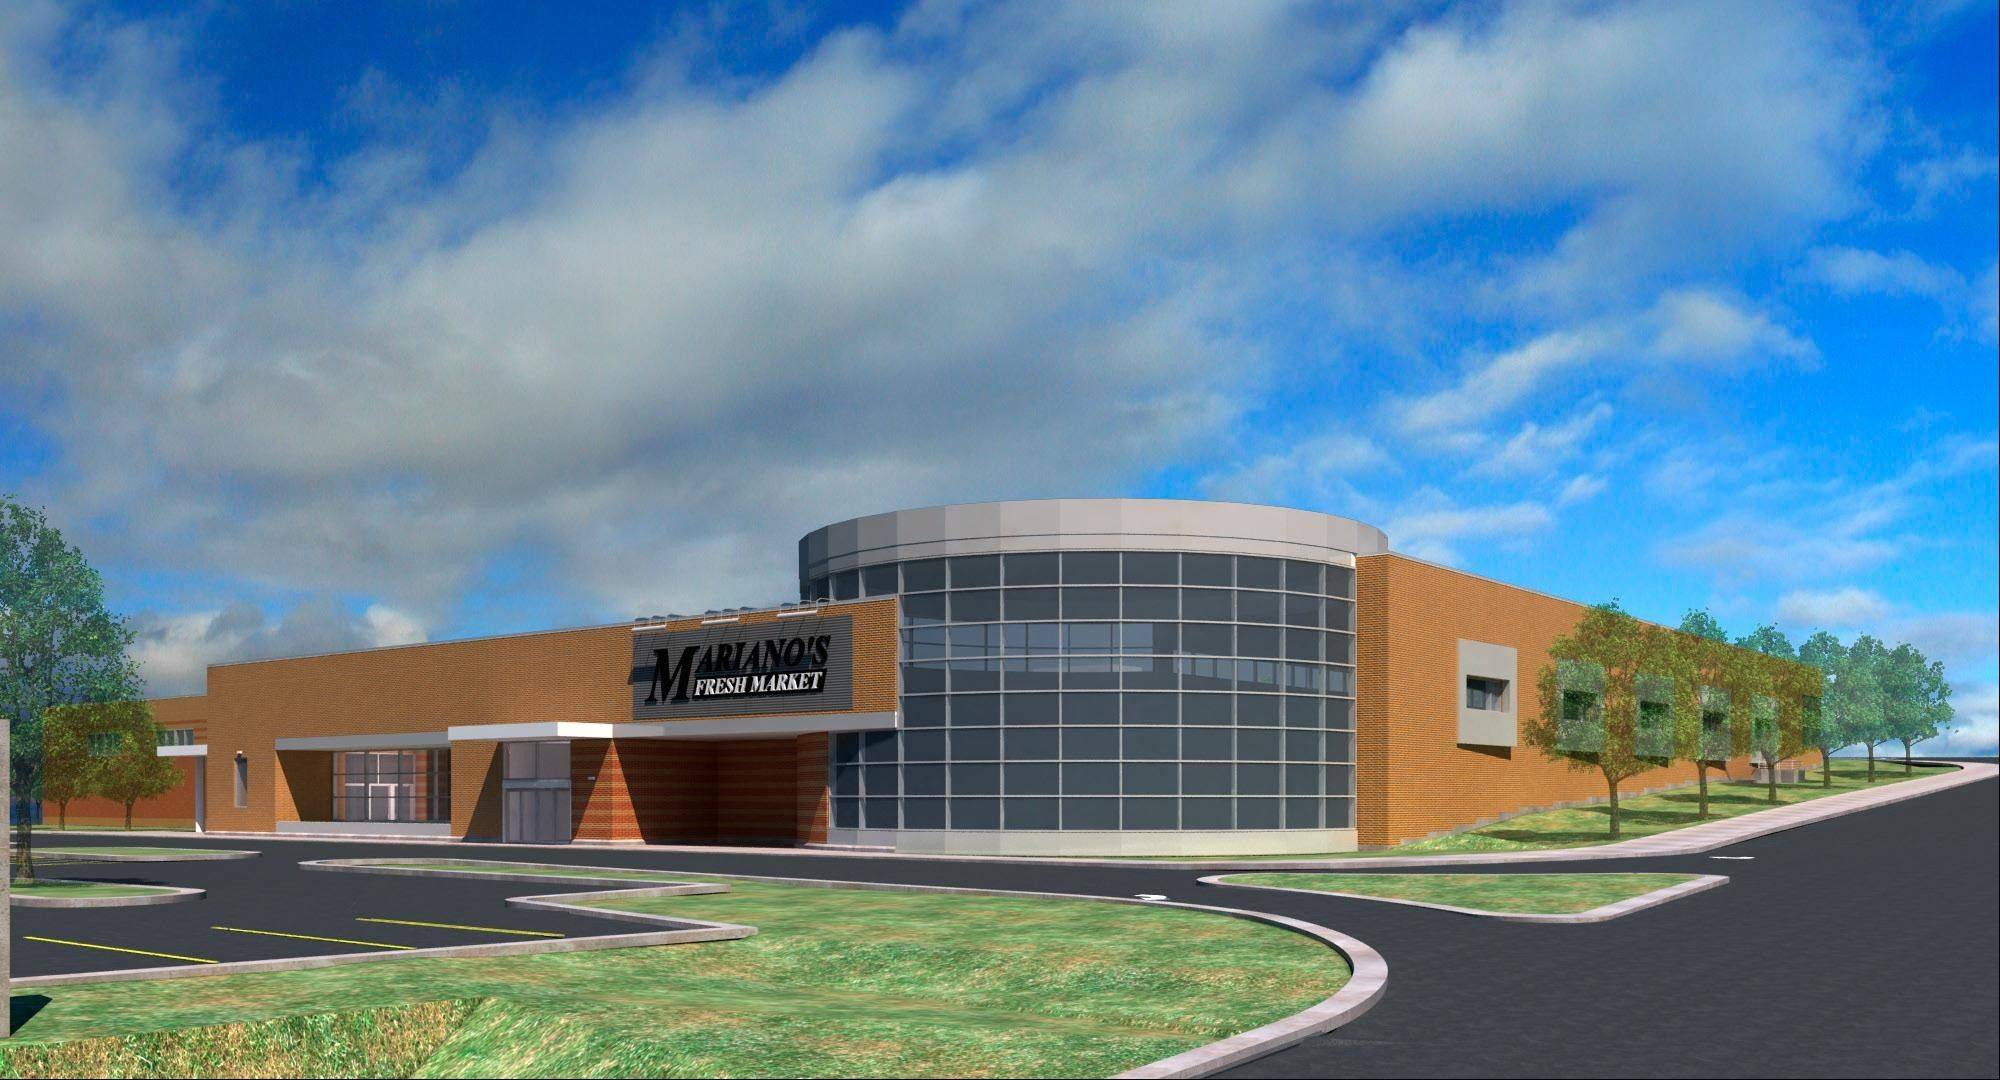 A Mariano's Fresh Market grocery store is scheduled to open by Oct. 15 at Naperville and Roosevelt roads in Wheaton.